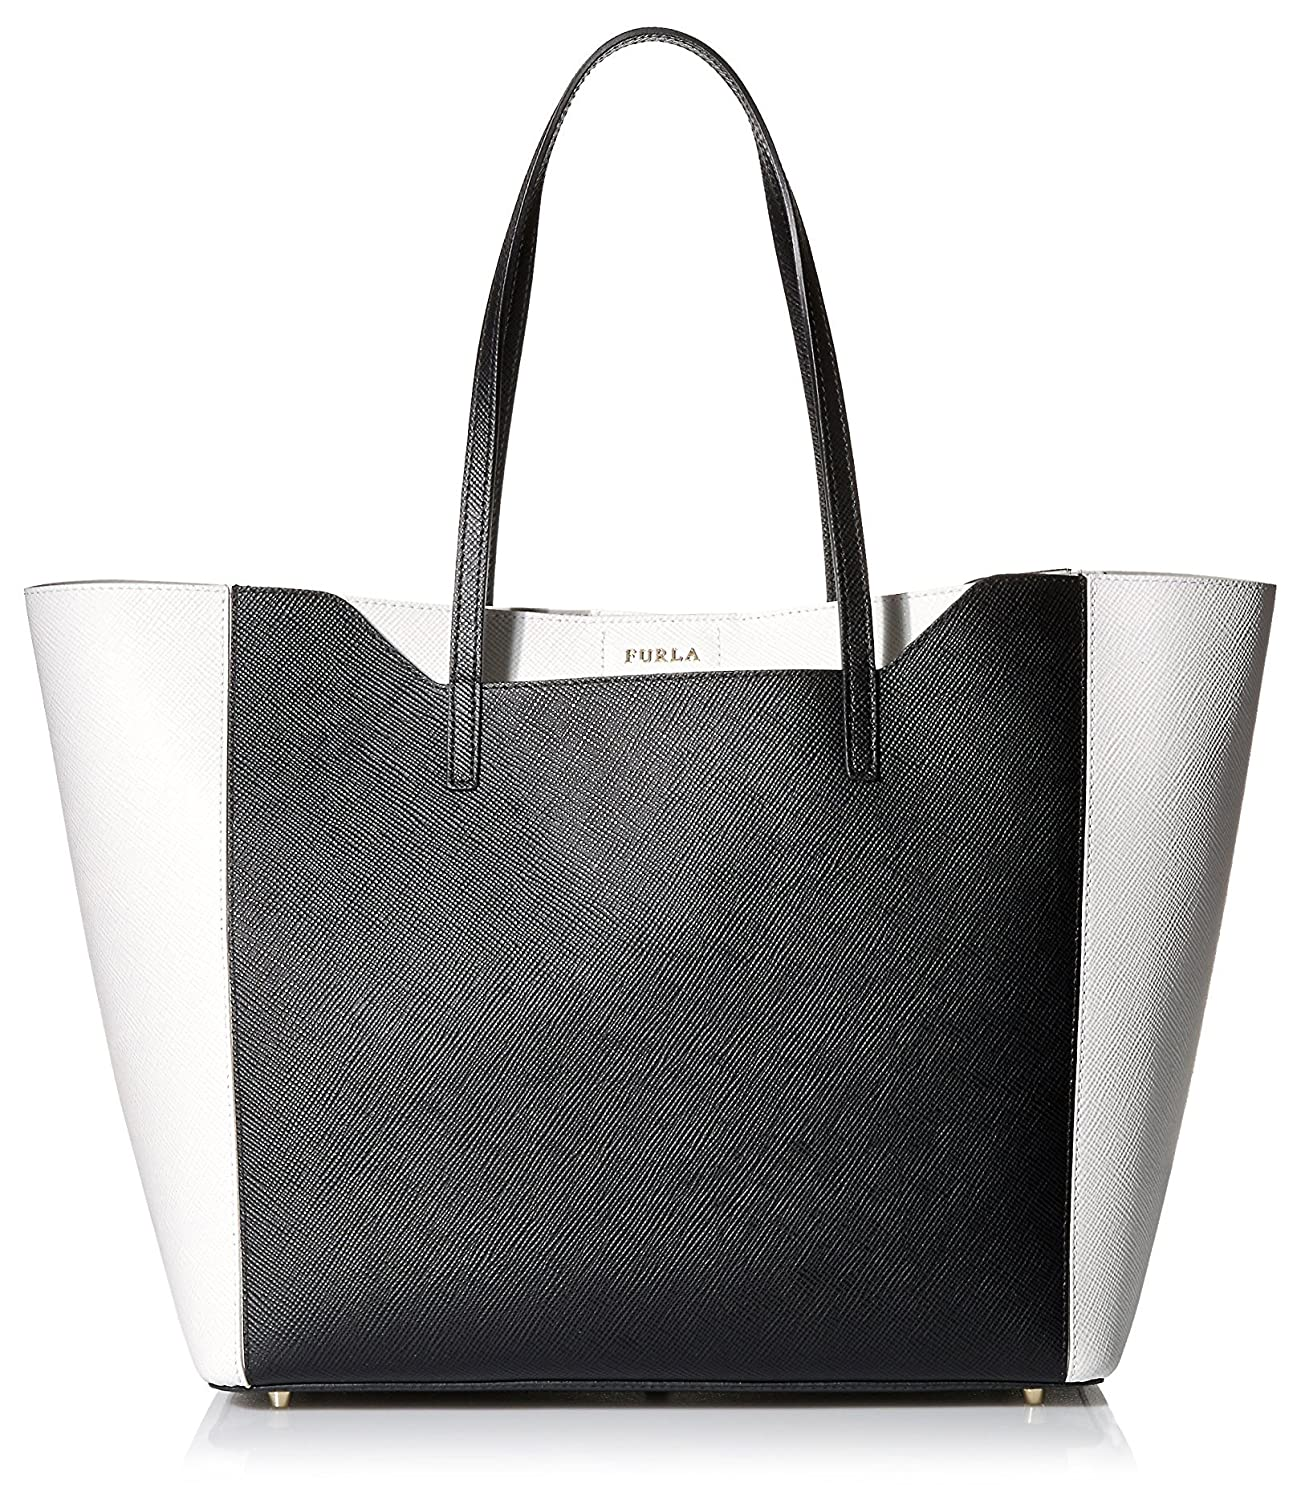 Amazon.com: Furla Mujer Fantasia M bolsa East/West Vit ...